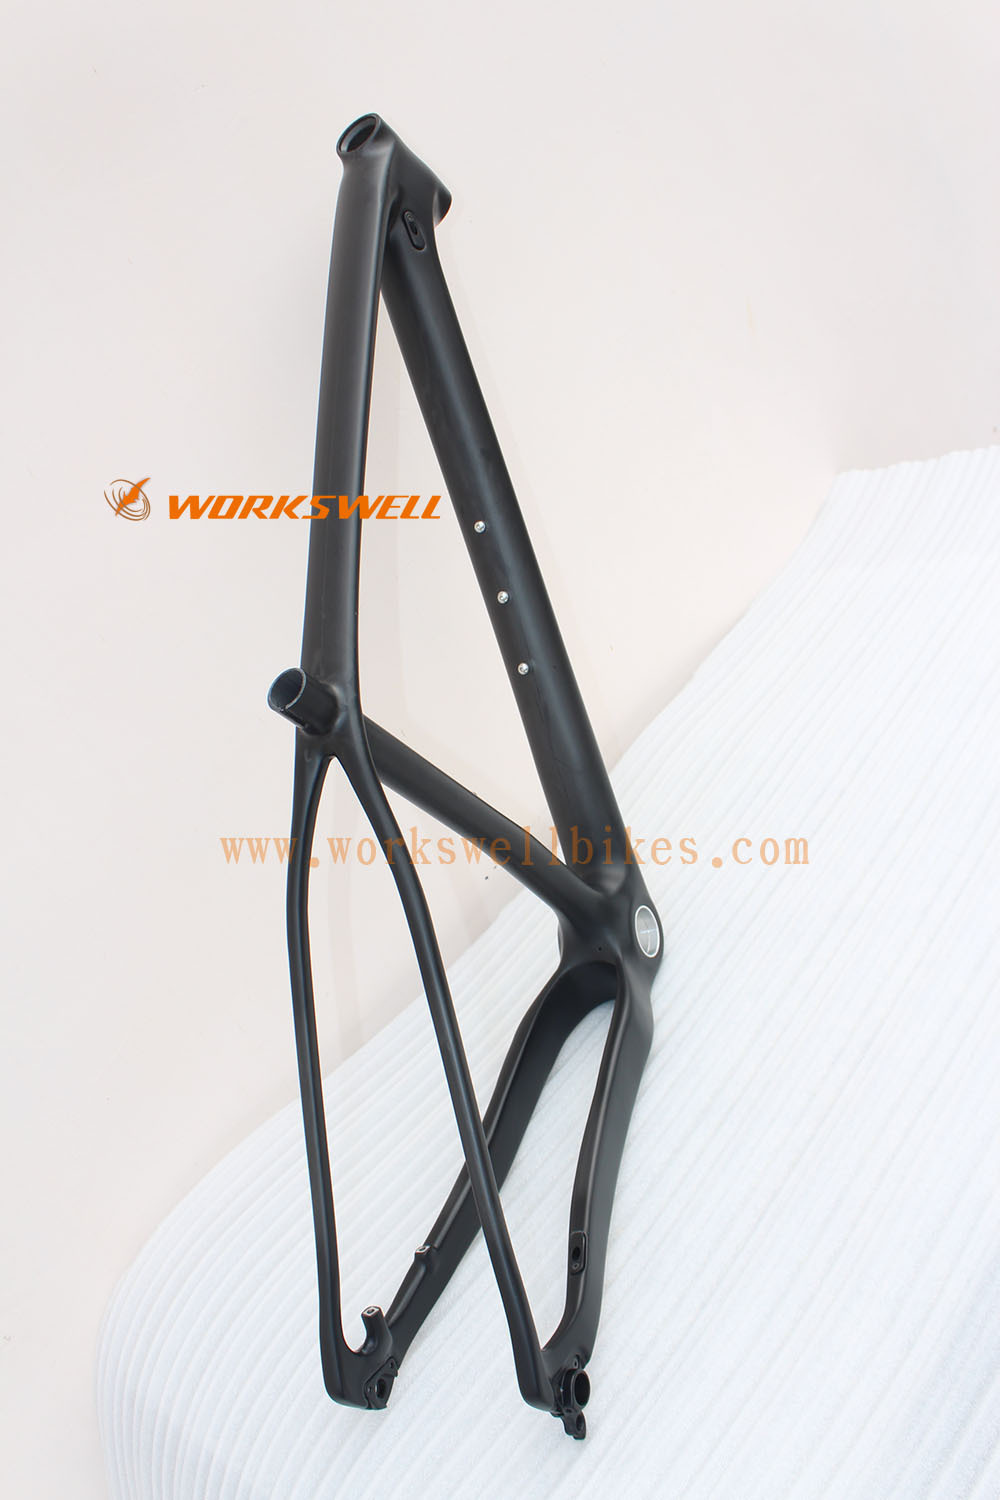 960g 29er carbon mountain bike frame size 15.5' UD matte axle mtb bicycle Frameset(China (Mainland))